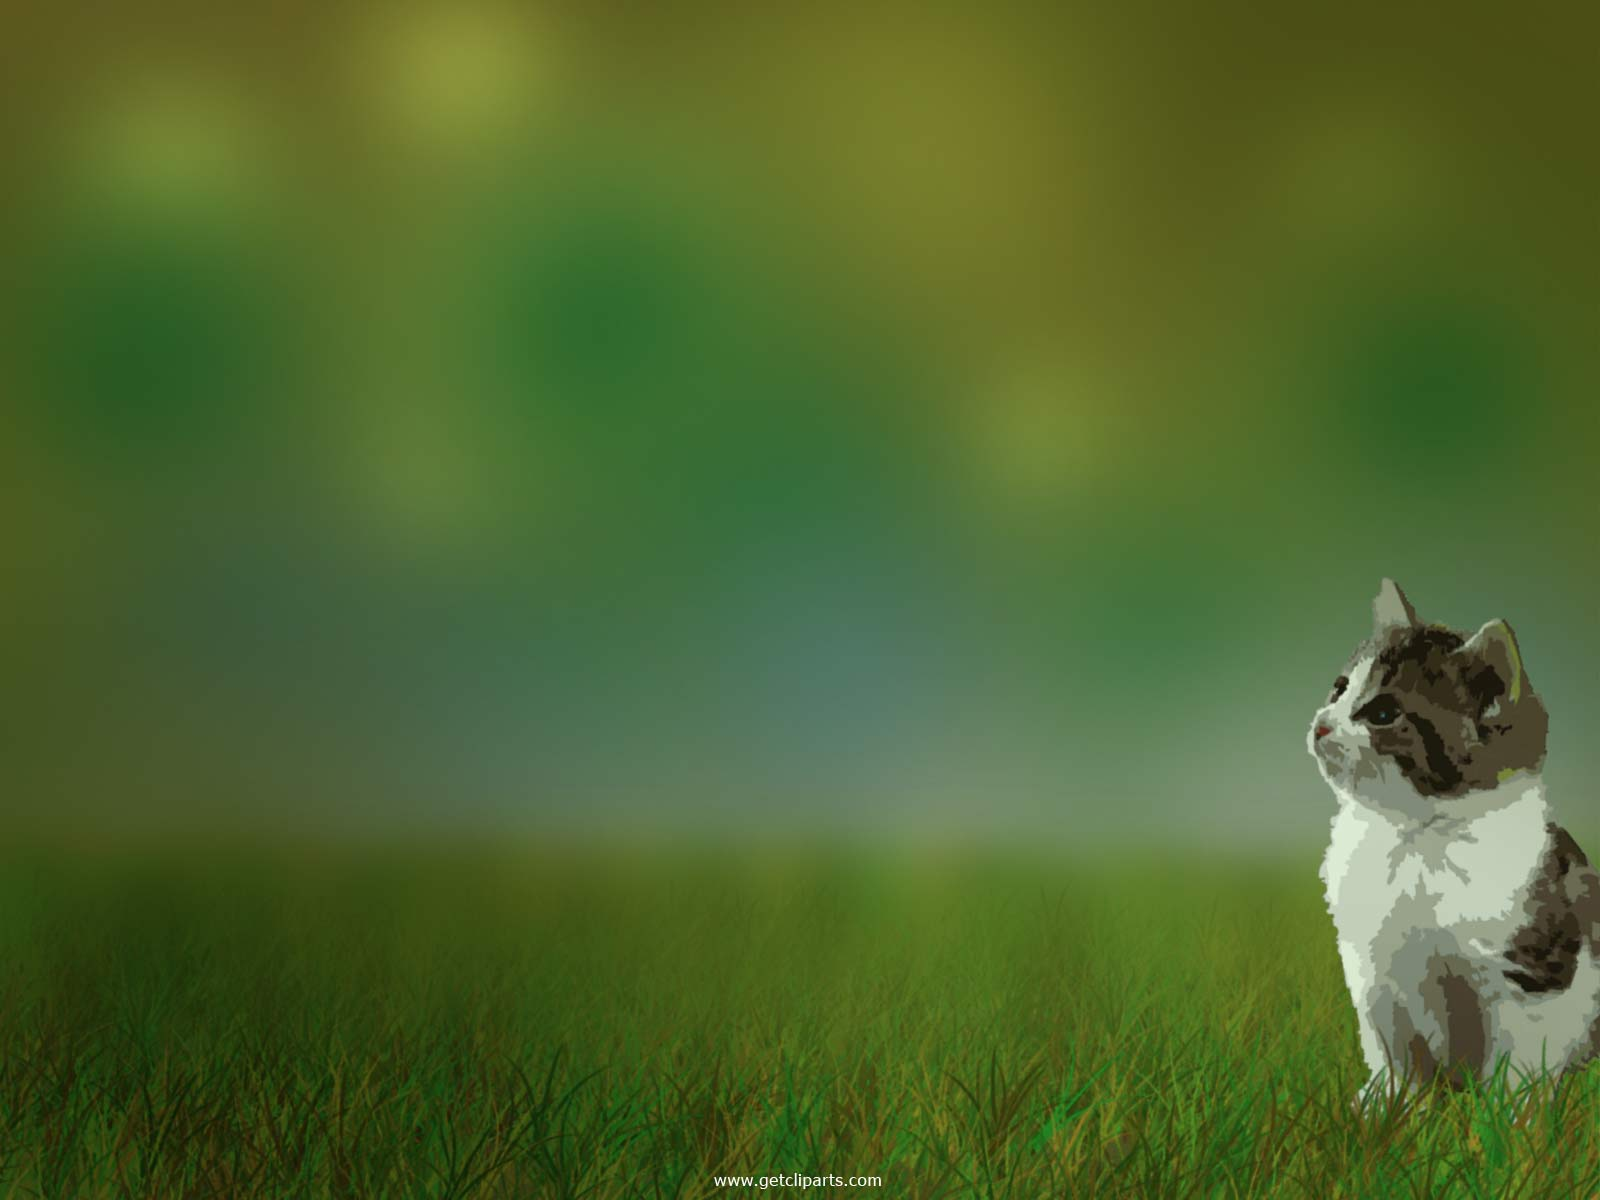 animals wallpapers backgroundsFunny animals wallpaper desktop Funny 1600x1200